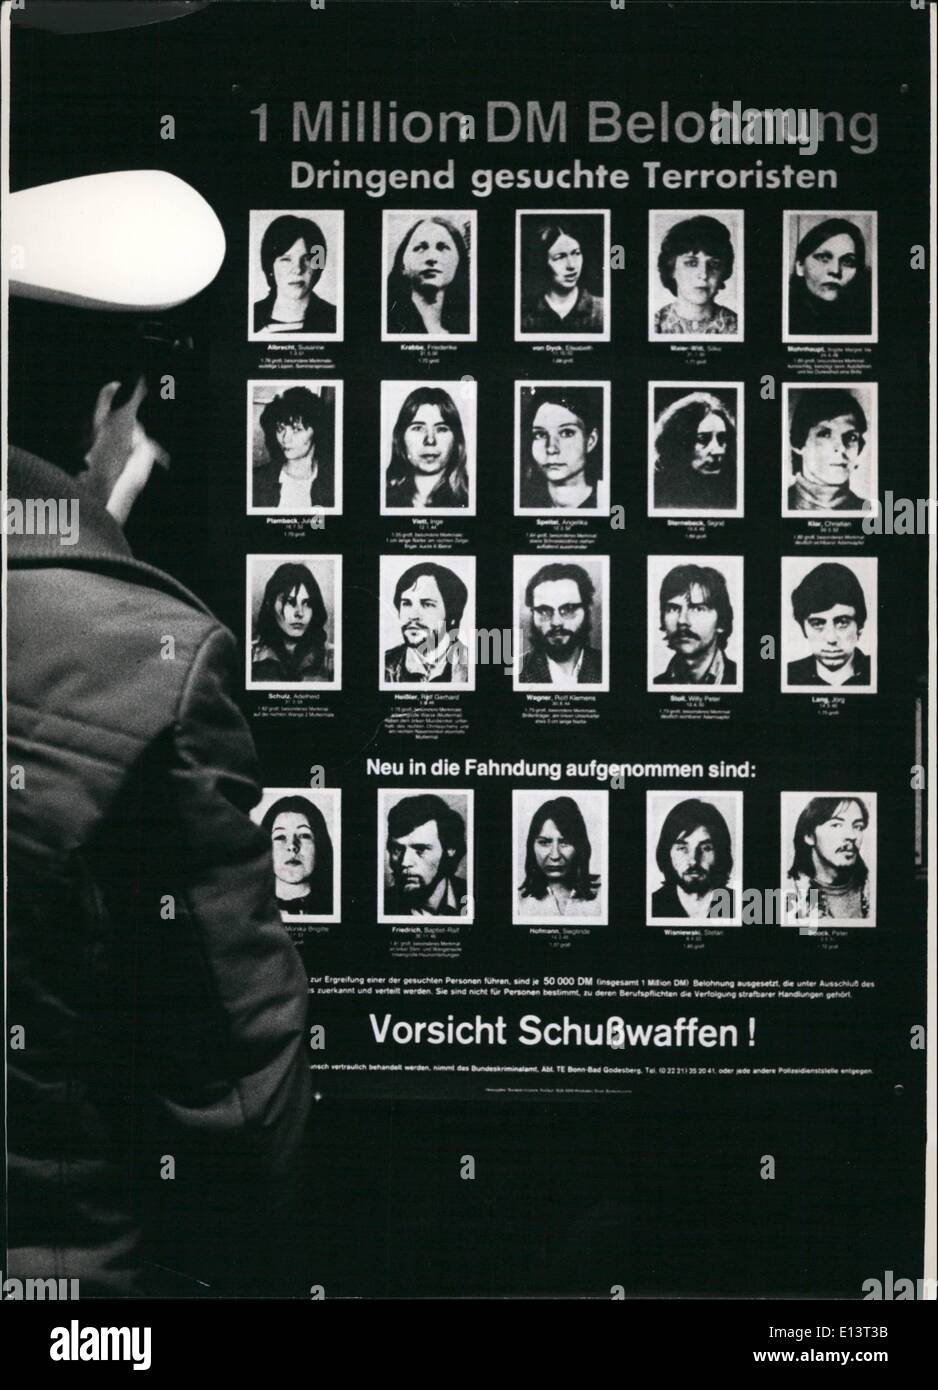 Mar. 27, 2012 - New Posters with Terrorists in the FRG: The criminal investigation department of the Federal Republic of Germany searches with a new poster for 20 countries. Photo shows a policeman sticks up the poster with the wanted terrorists. First row: Susanne Albrecht, Friderike Krabbe, Elisabeth Von Dyck, Silke Maierwitt, Brigitte Mohnhaupt (f.l.t.r - Stock Image